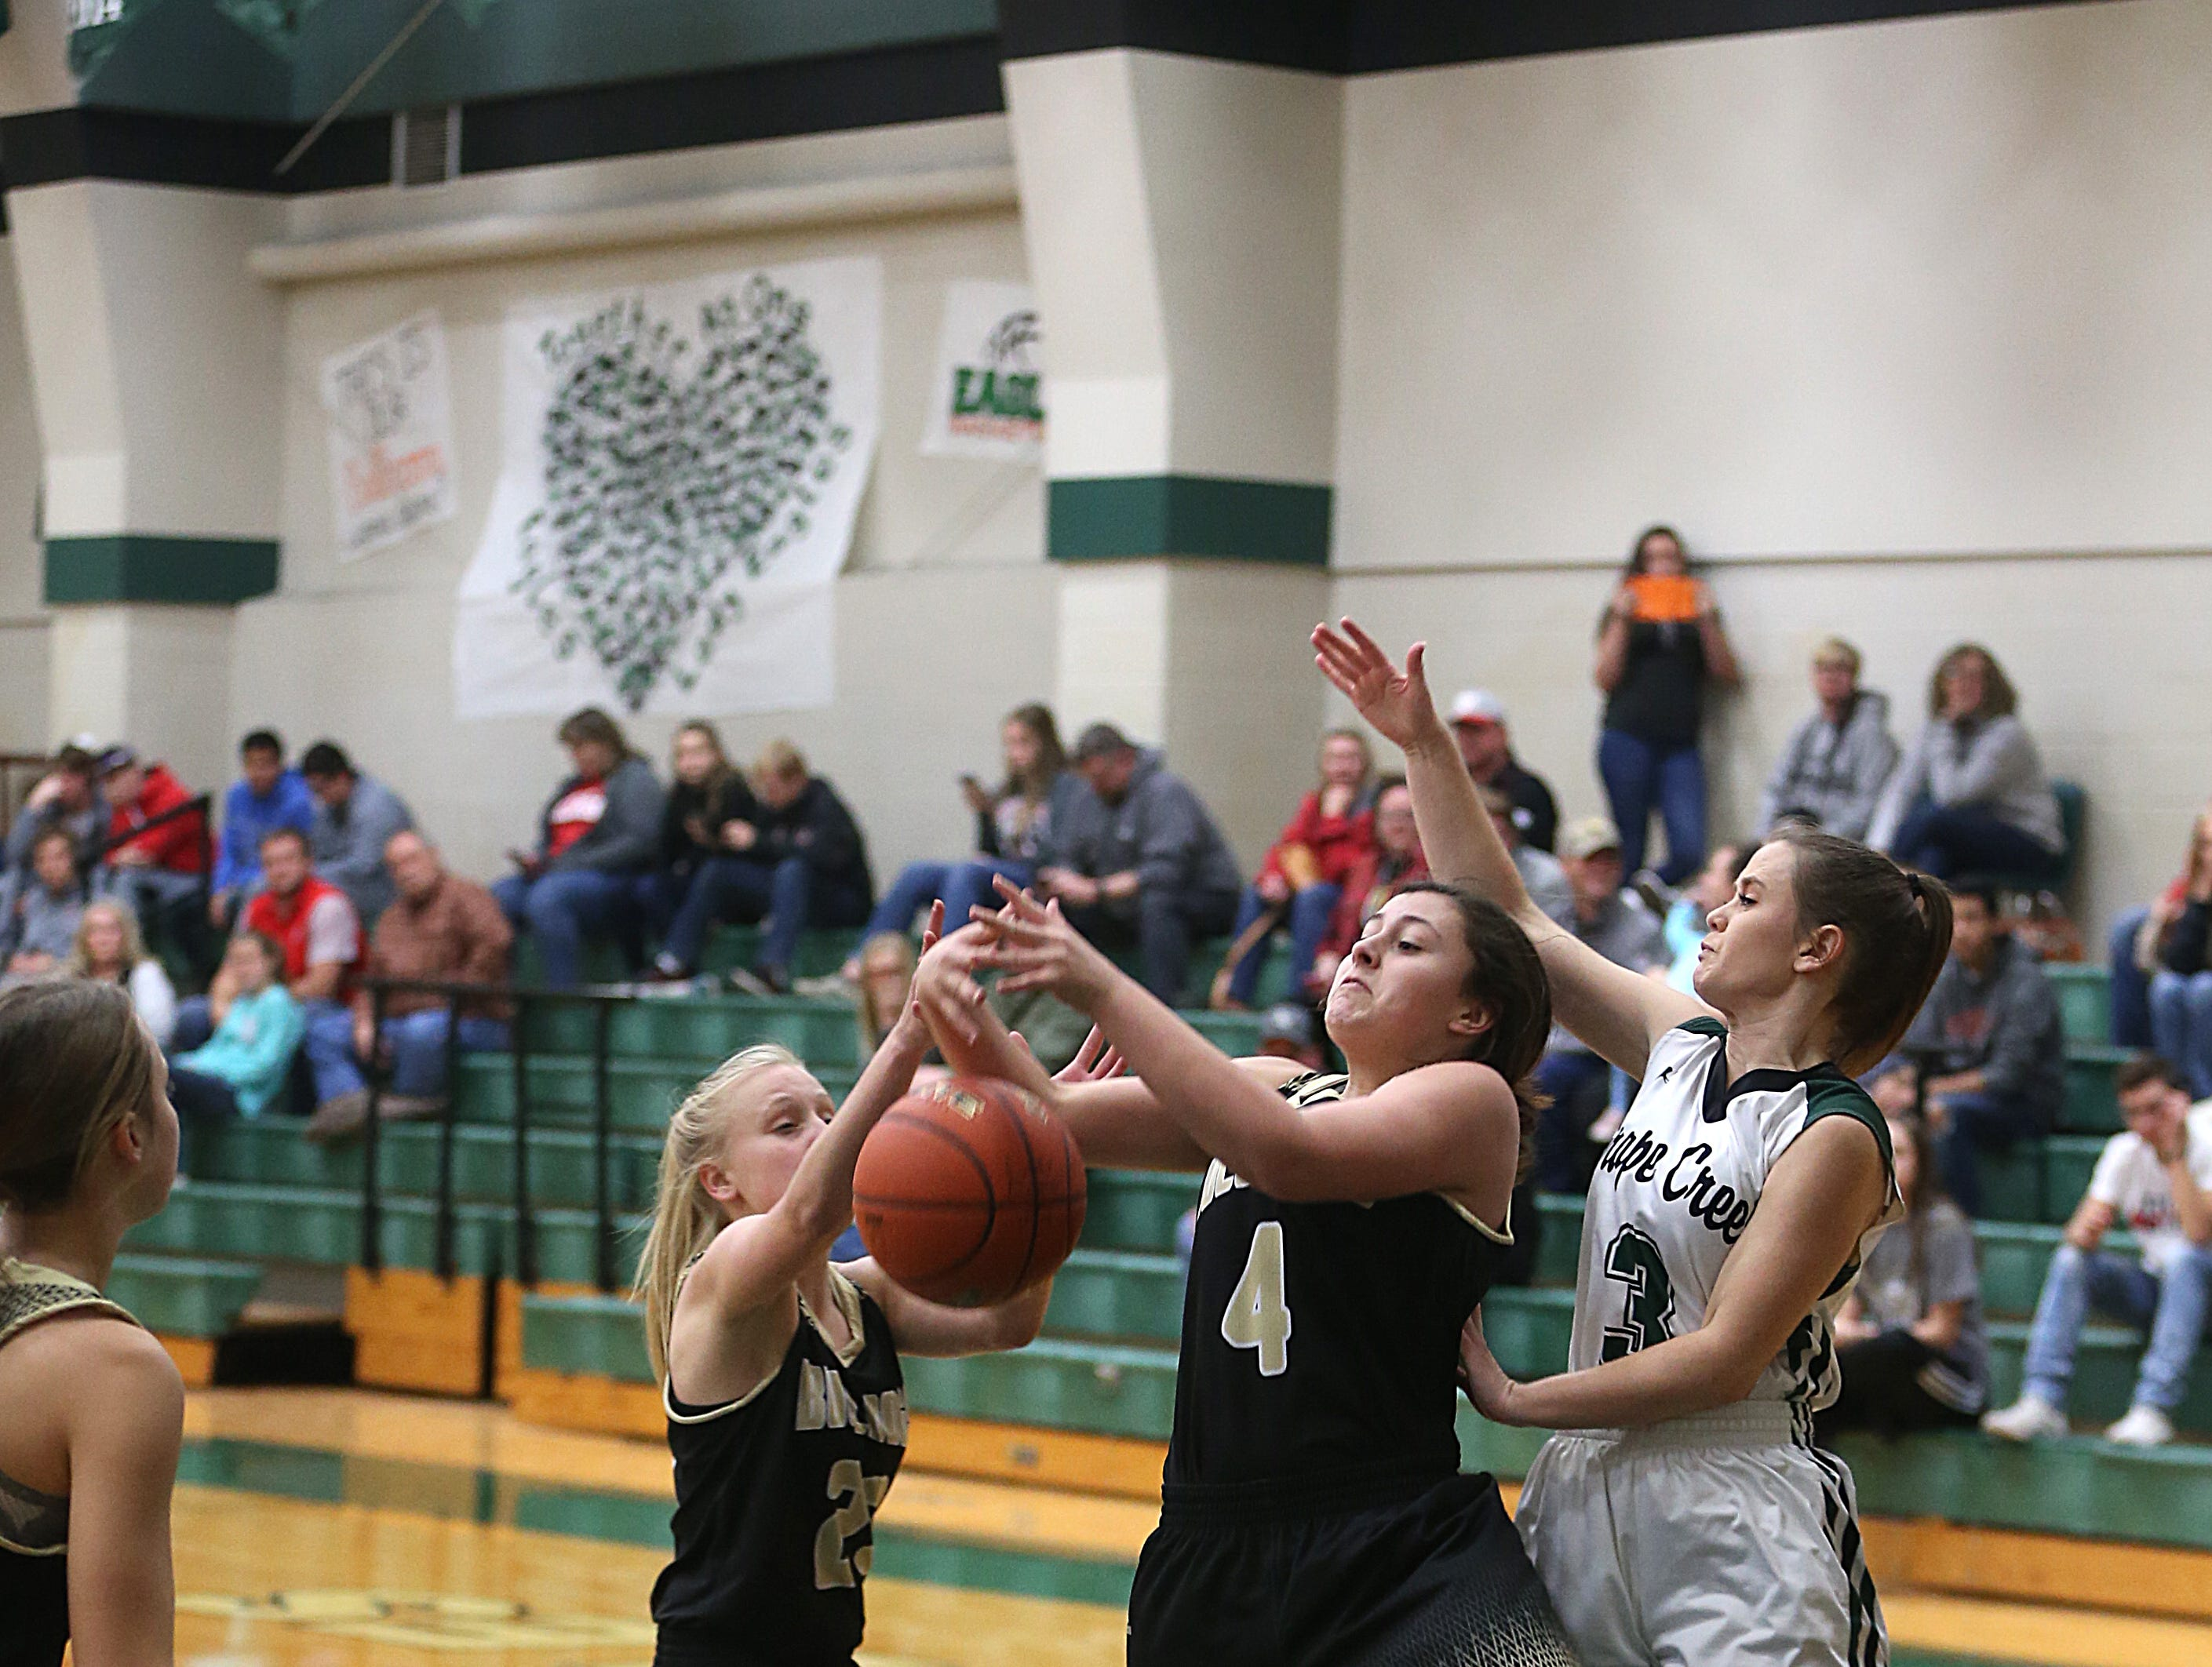 Brady's Shay McFarland (#4) and teammate Savanna Morton (#23) try to regain control of the ball before Grape Creek's McKenna Rivers Friday, Dec. 14, 2018 during their game in Grape Creek. Brady won 48 to 28.